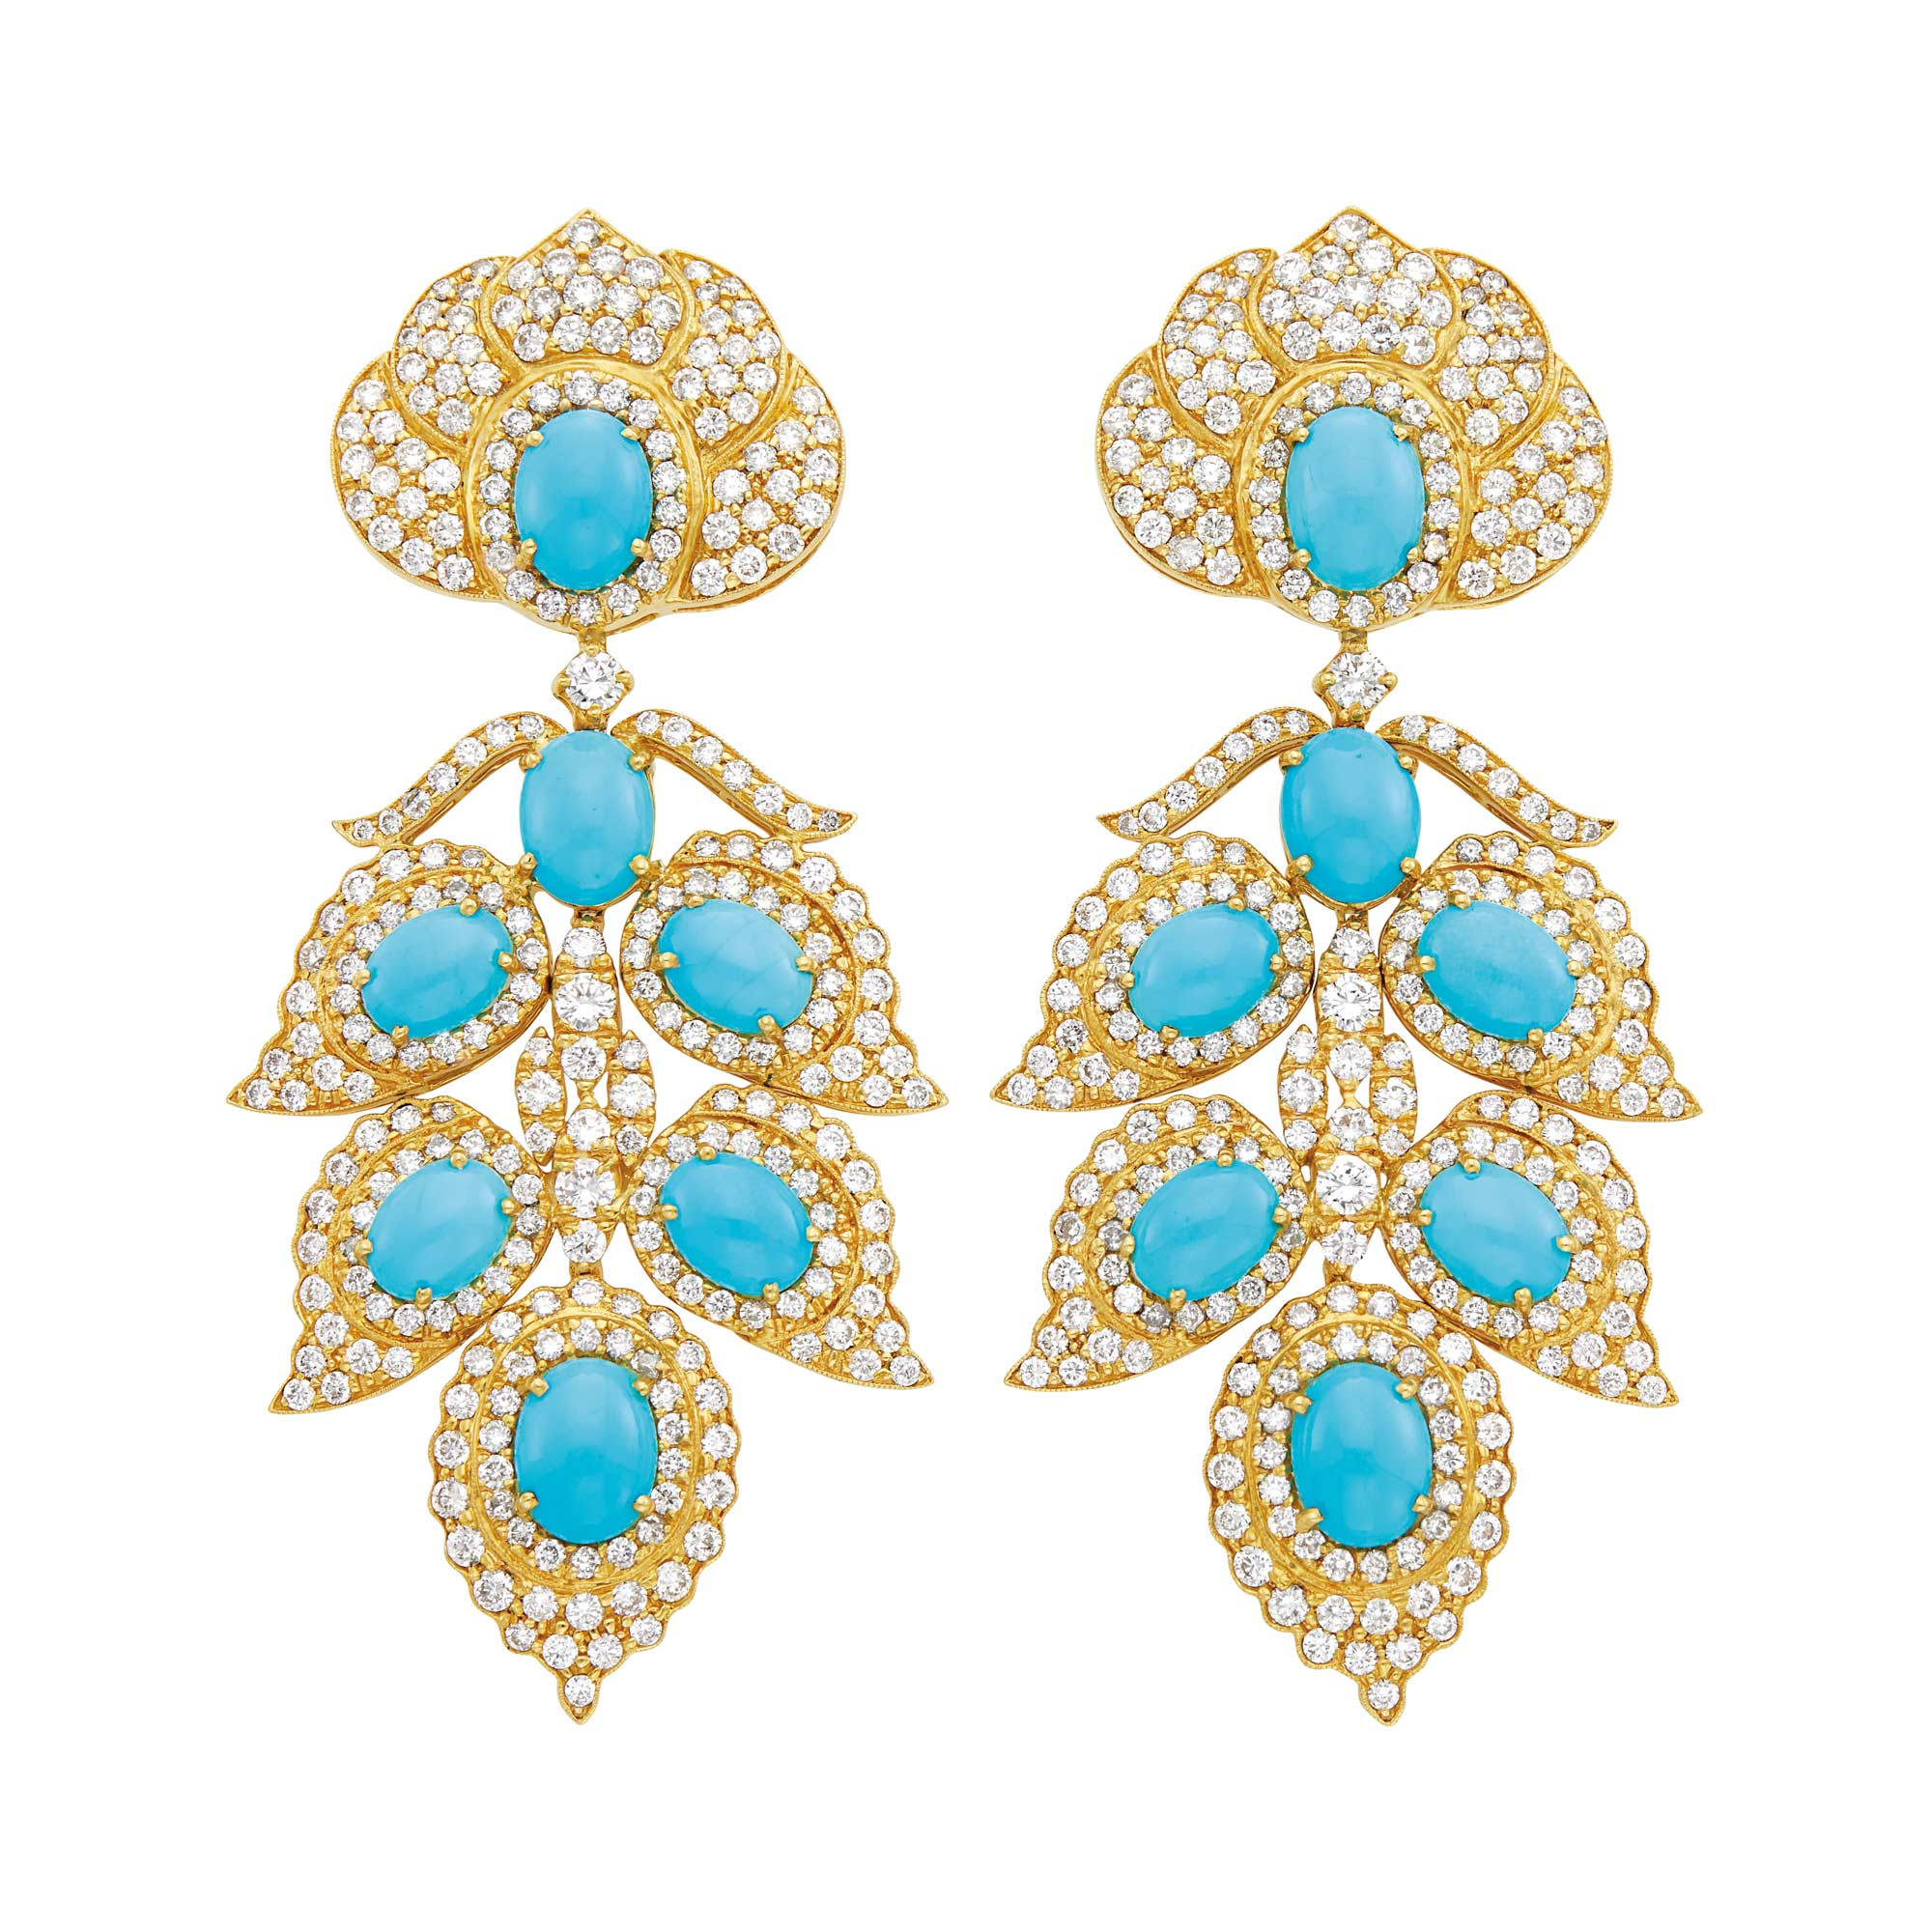 Lot image - Pair of Gold, Turquoise and Diamond Pendant-Earrings